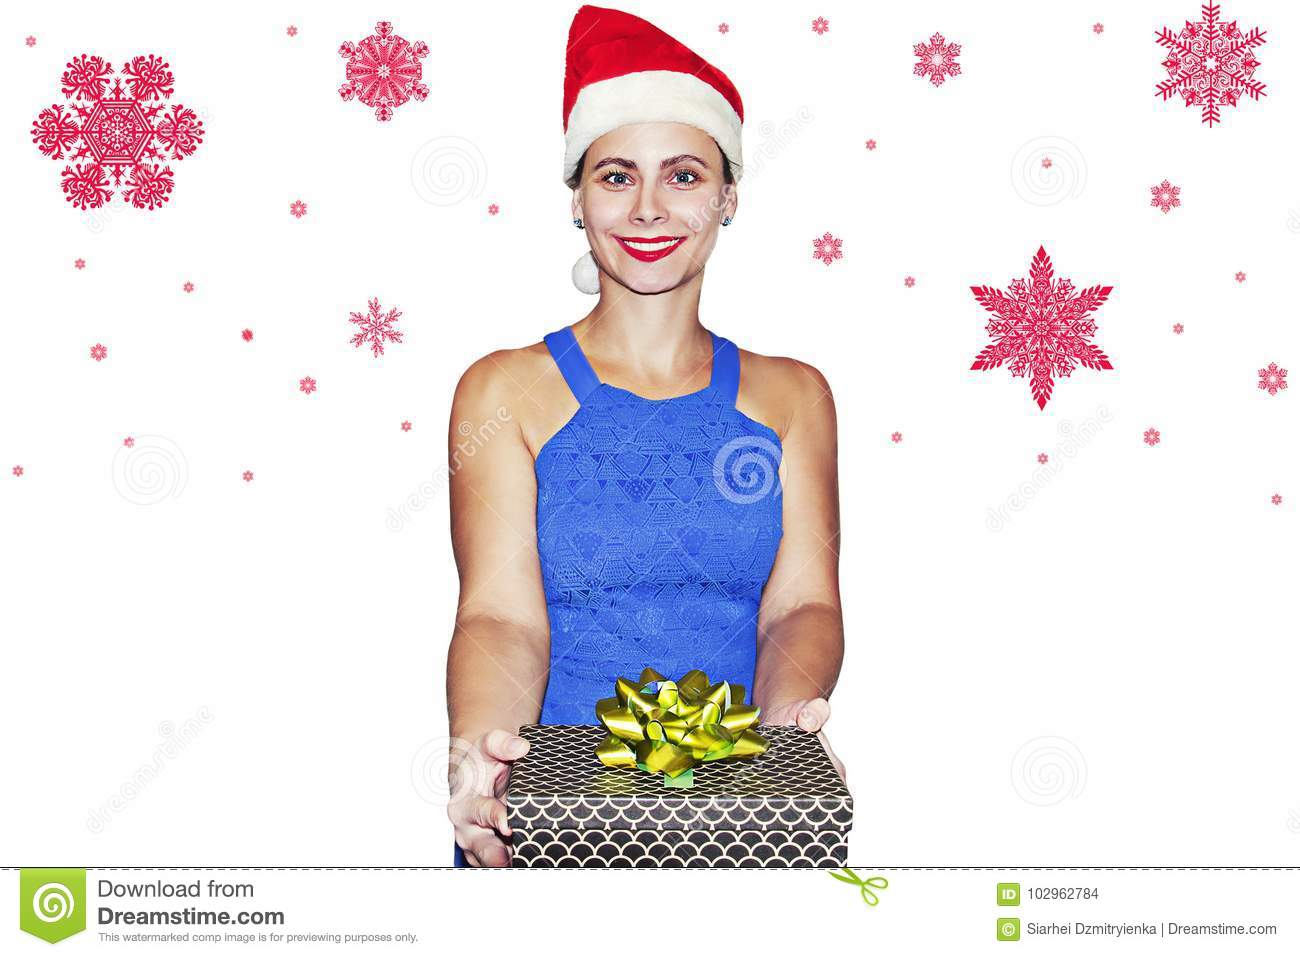 Smiling girl in Santa Claus hat with gift box in hand on white background with red snowflakes